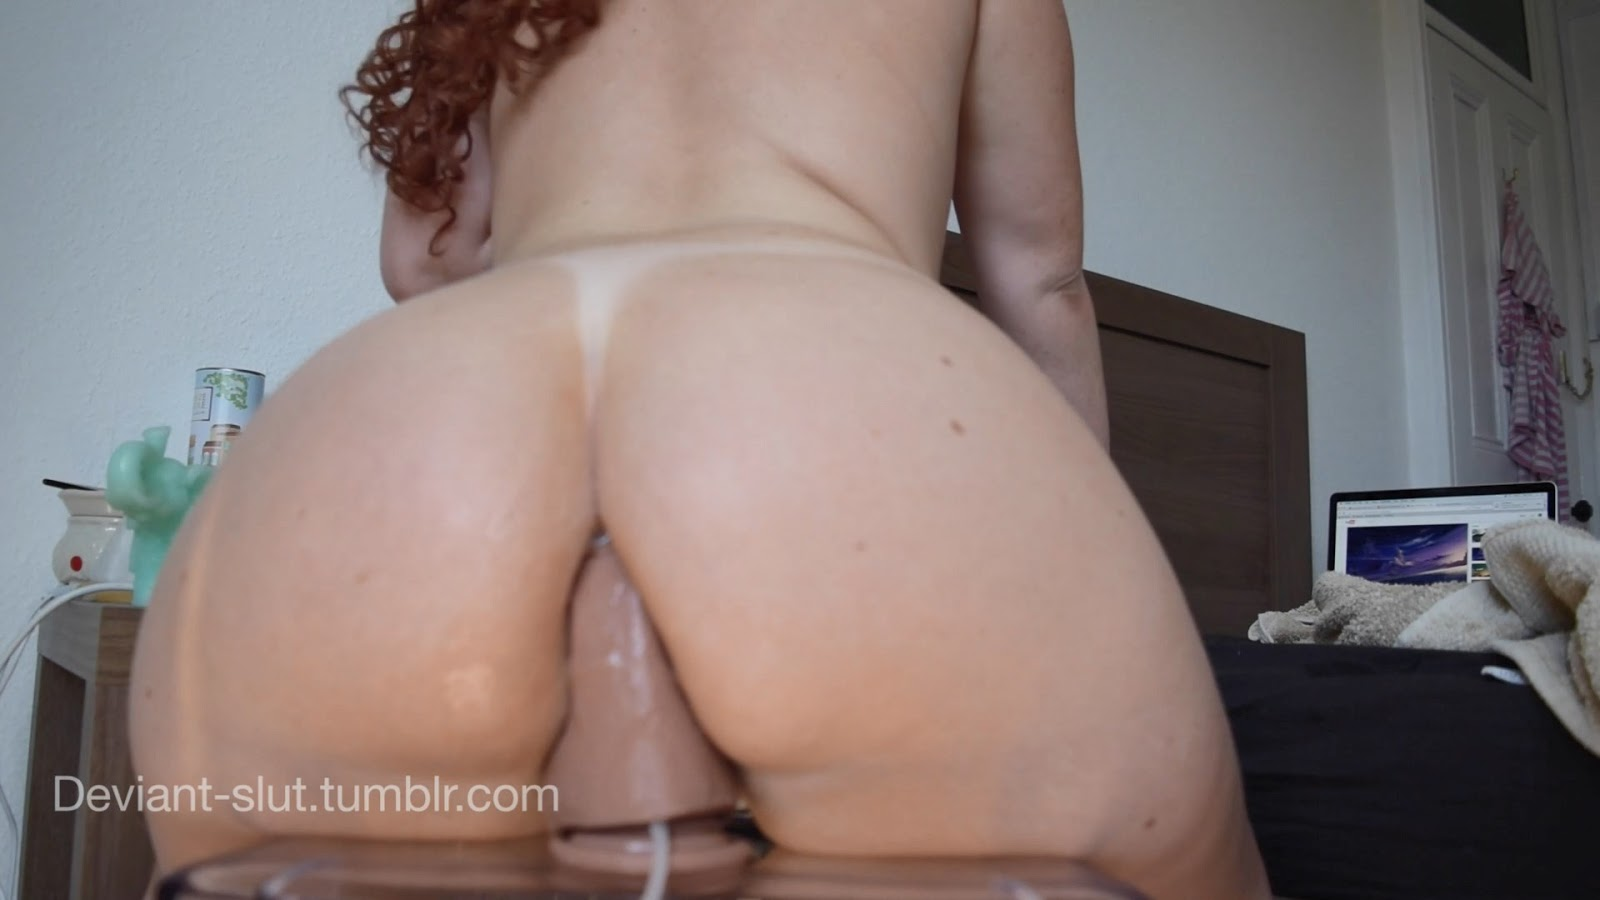 10 Anal Creampies